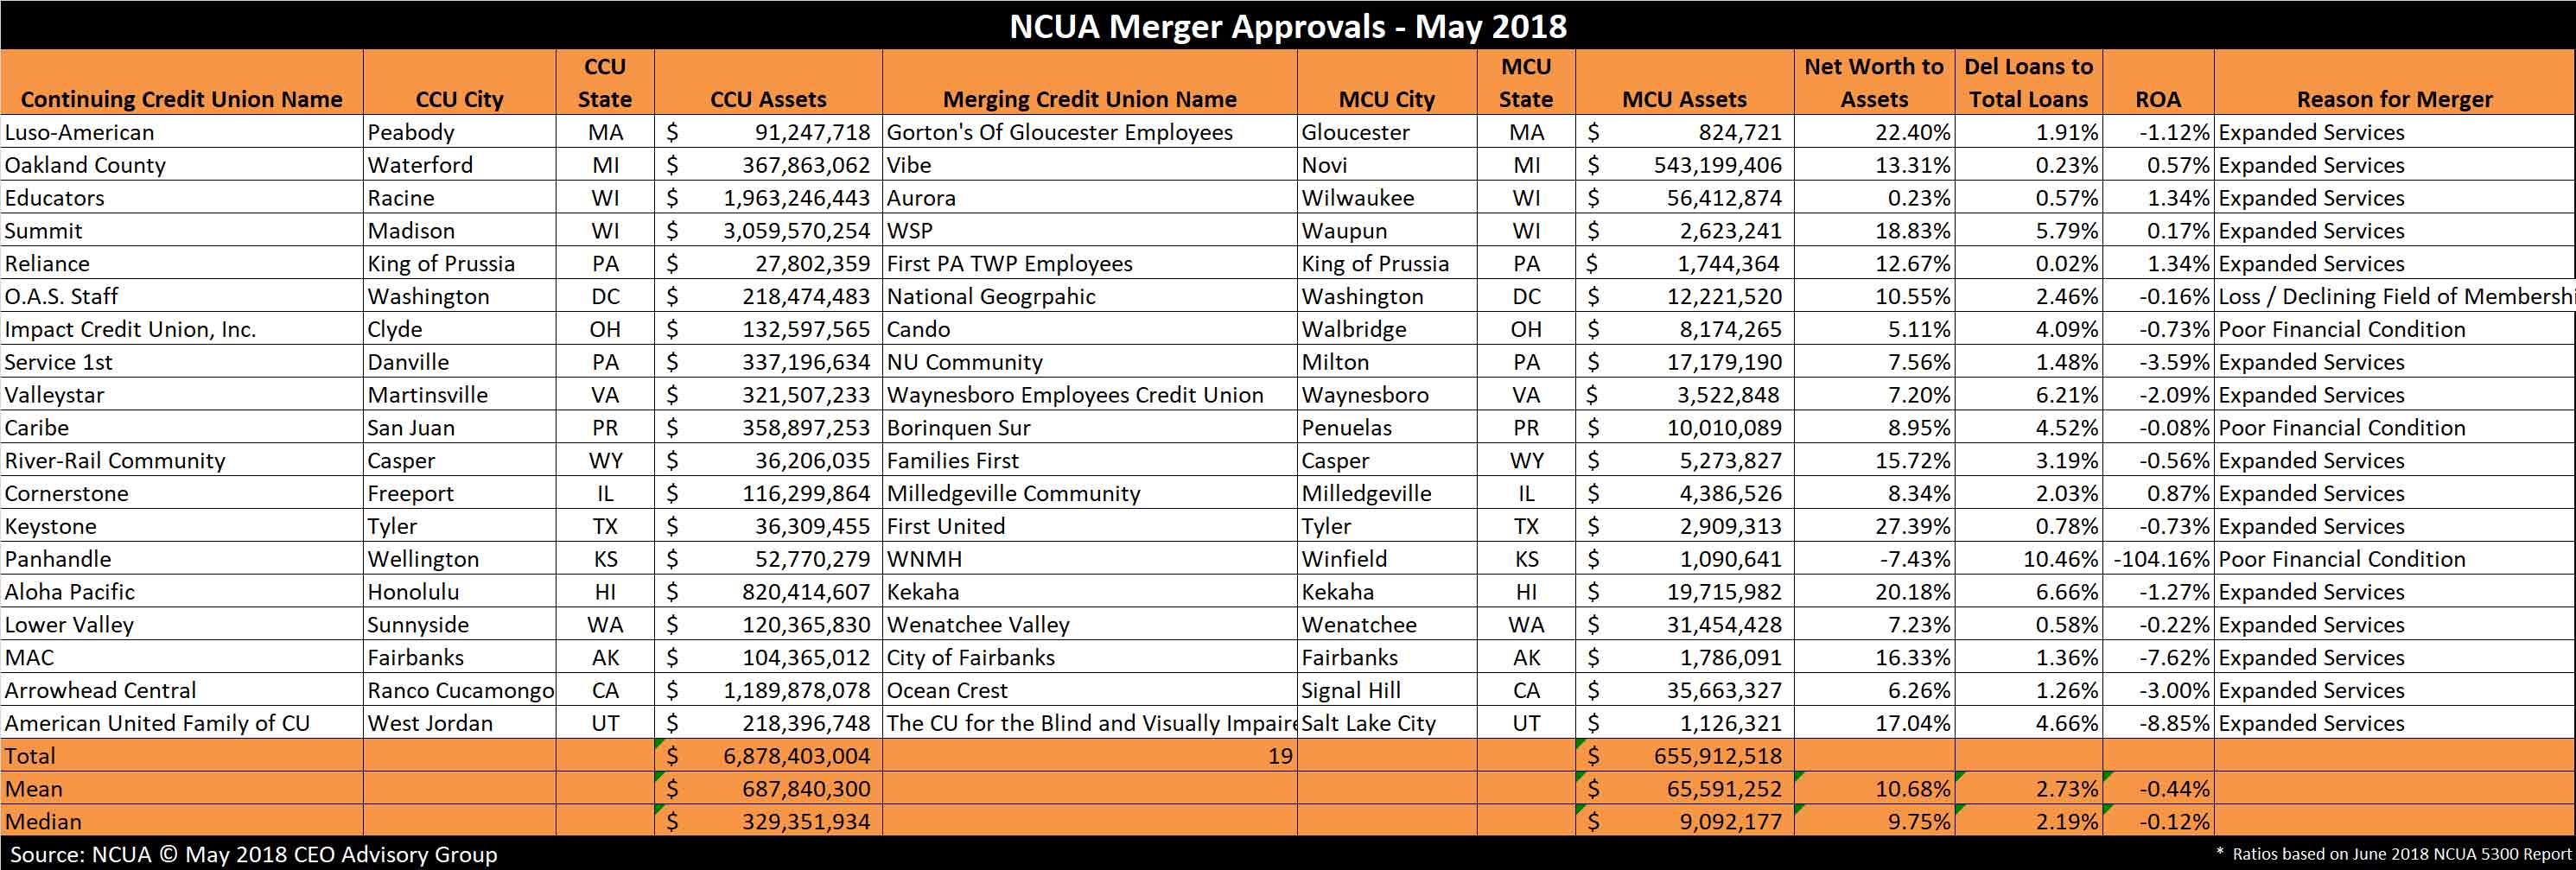 NCUA Merger Approvals May 2018